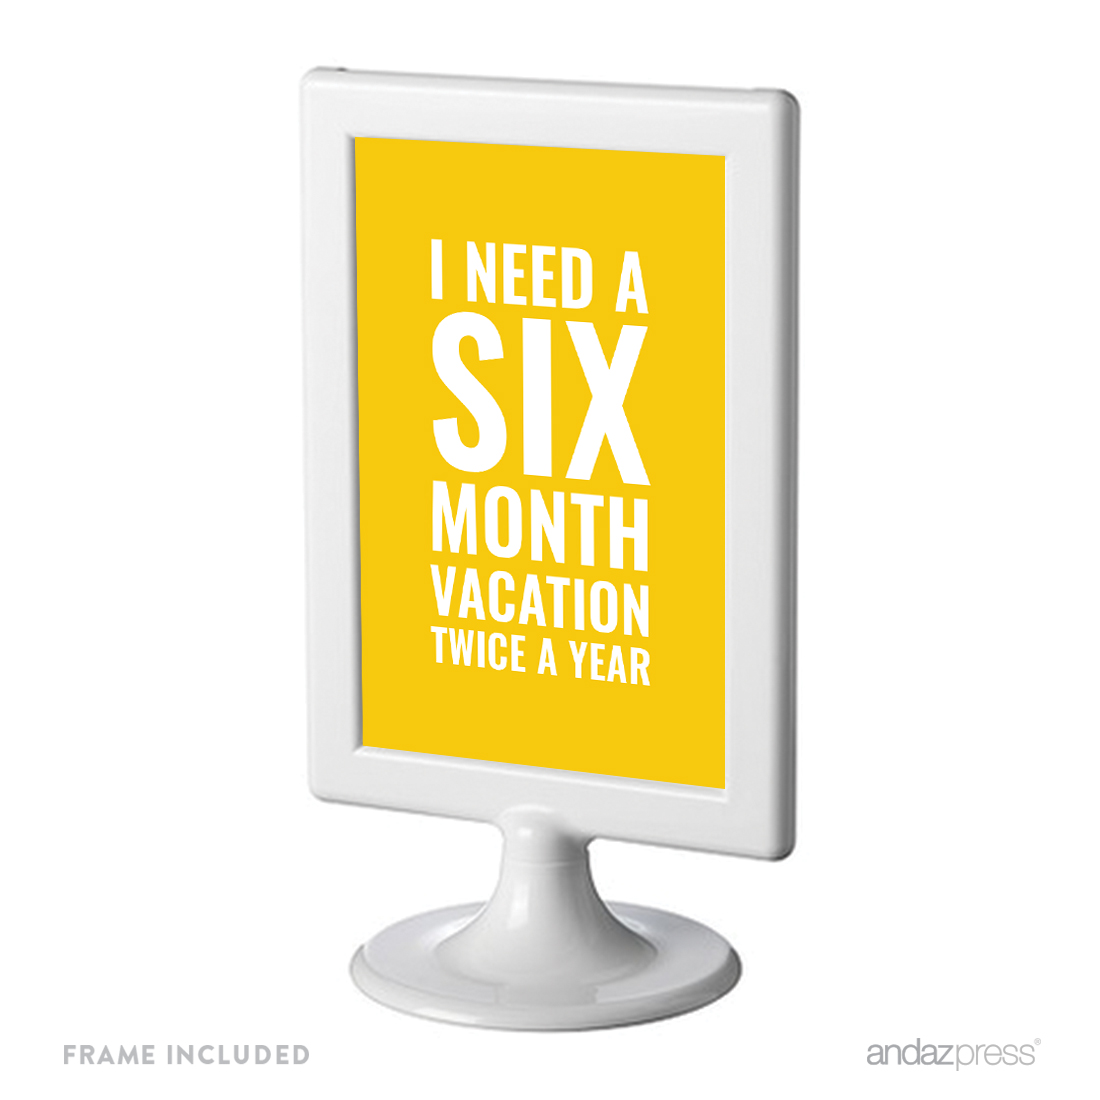 I Need A Six Month Vacation Twice A Year Funny Inspirational